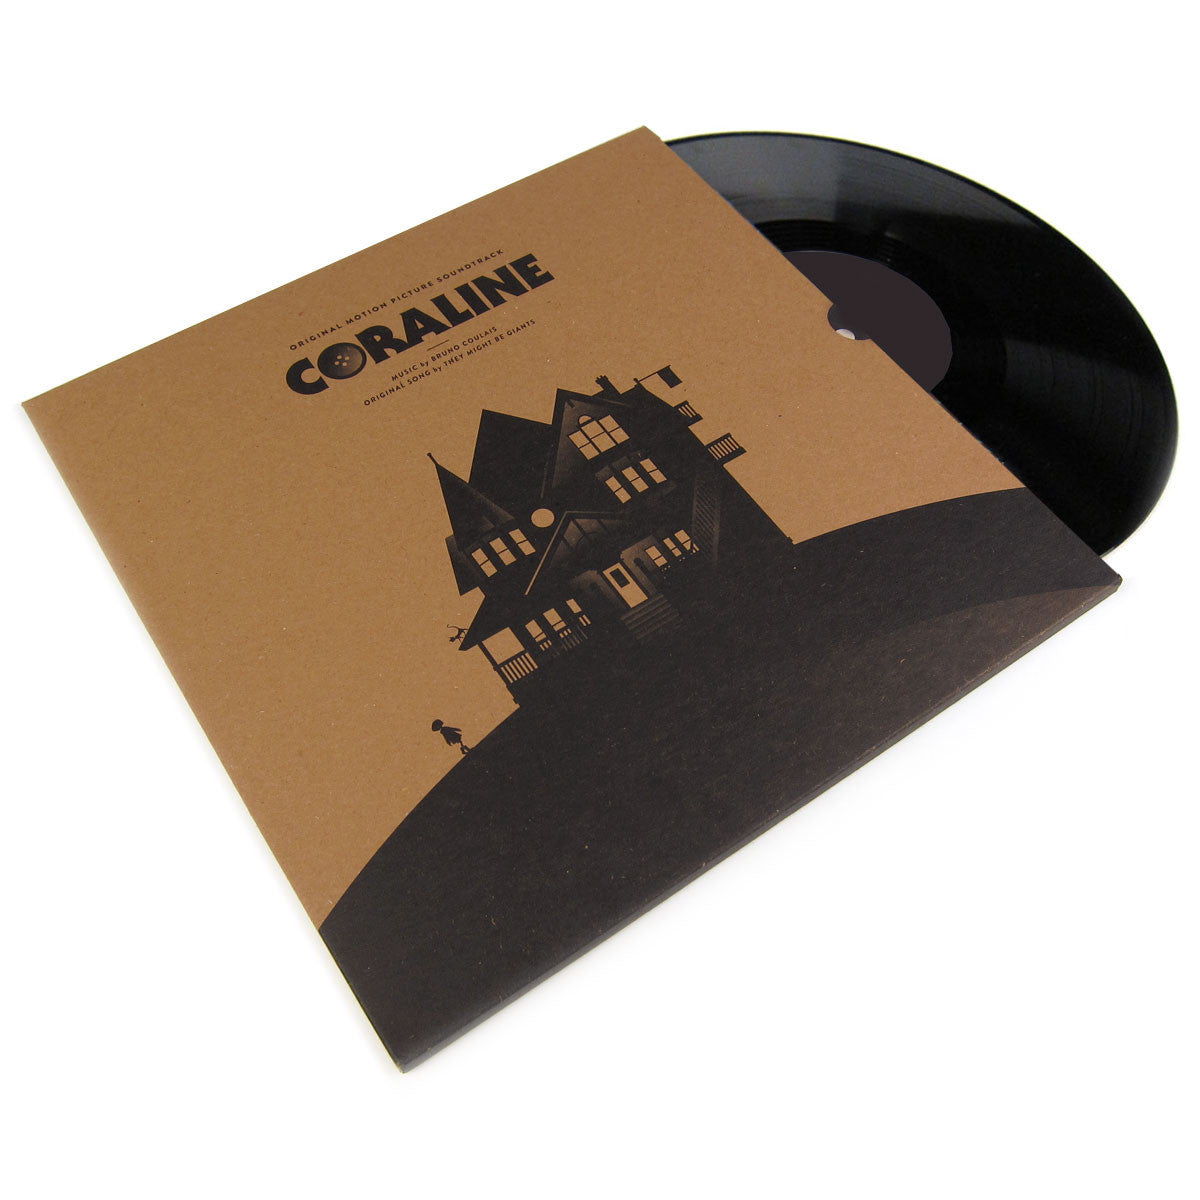 Bruno Coulais: Coraline Origintal Motion Picture Soundtrack Vinyl 2LP